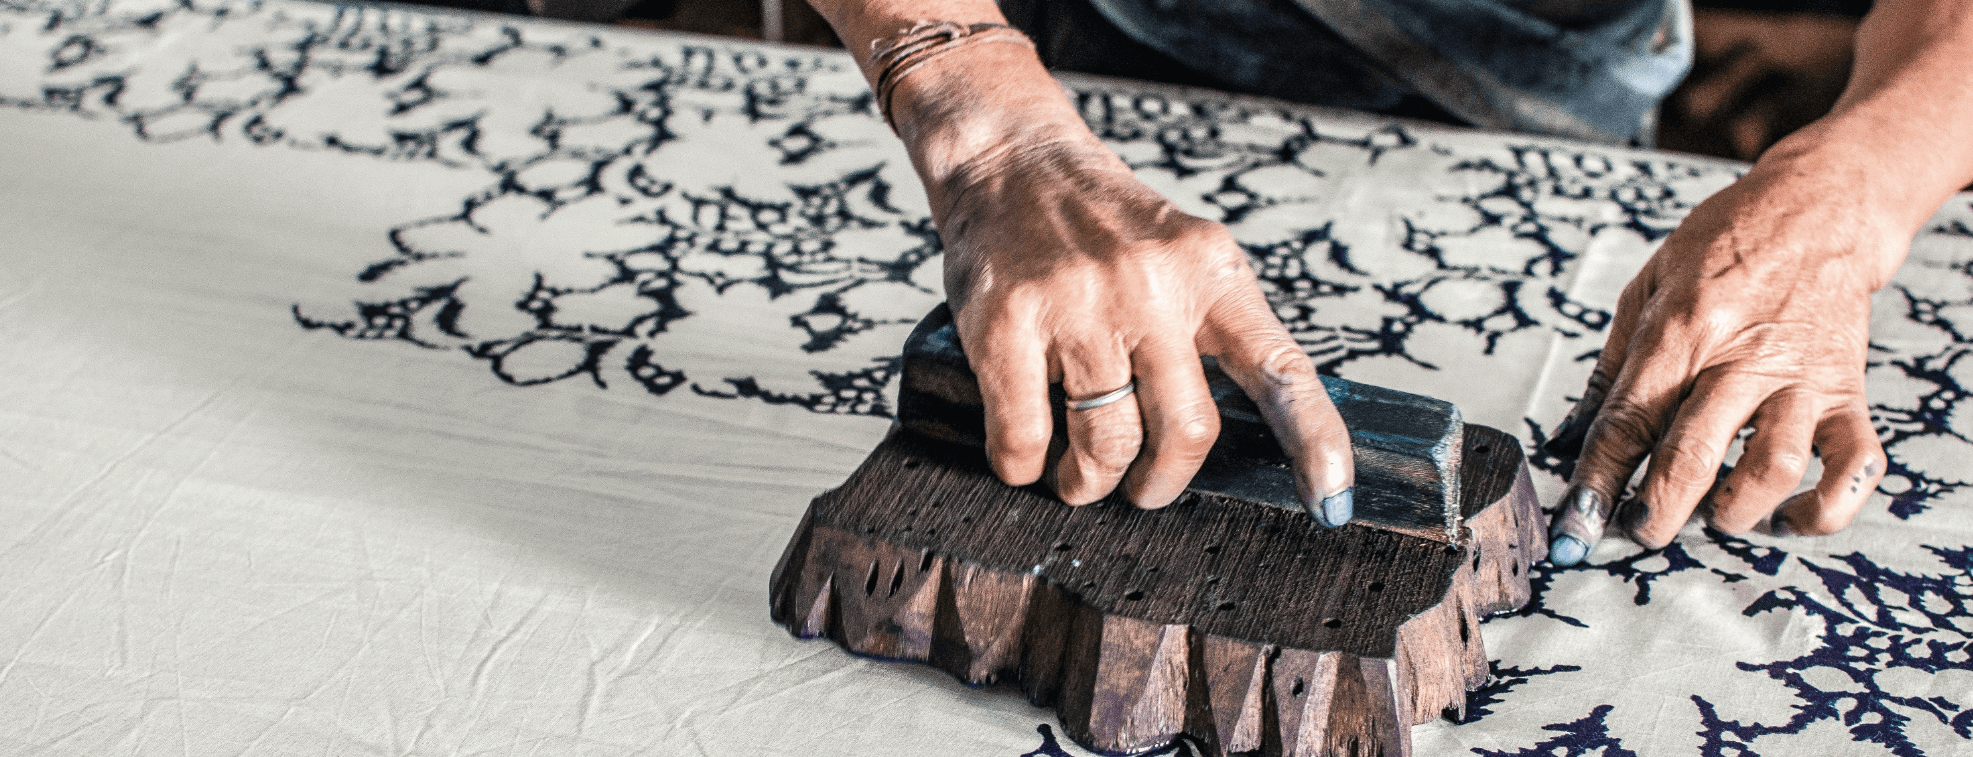 A person creating a floral print on a fabric using block printing method